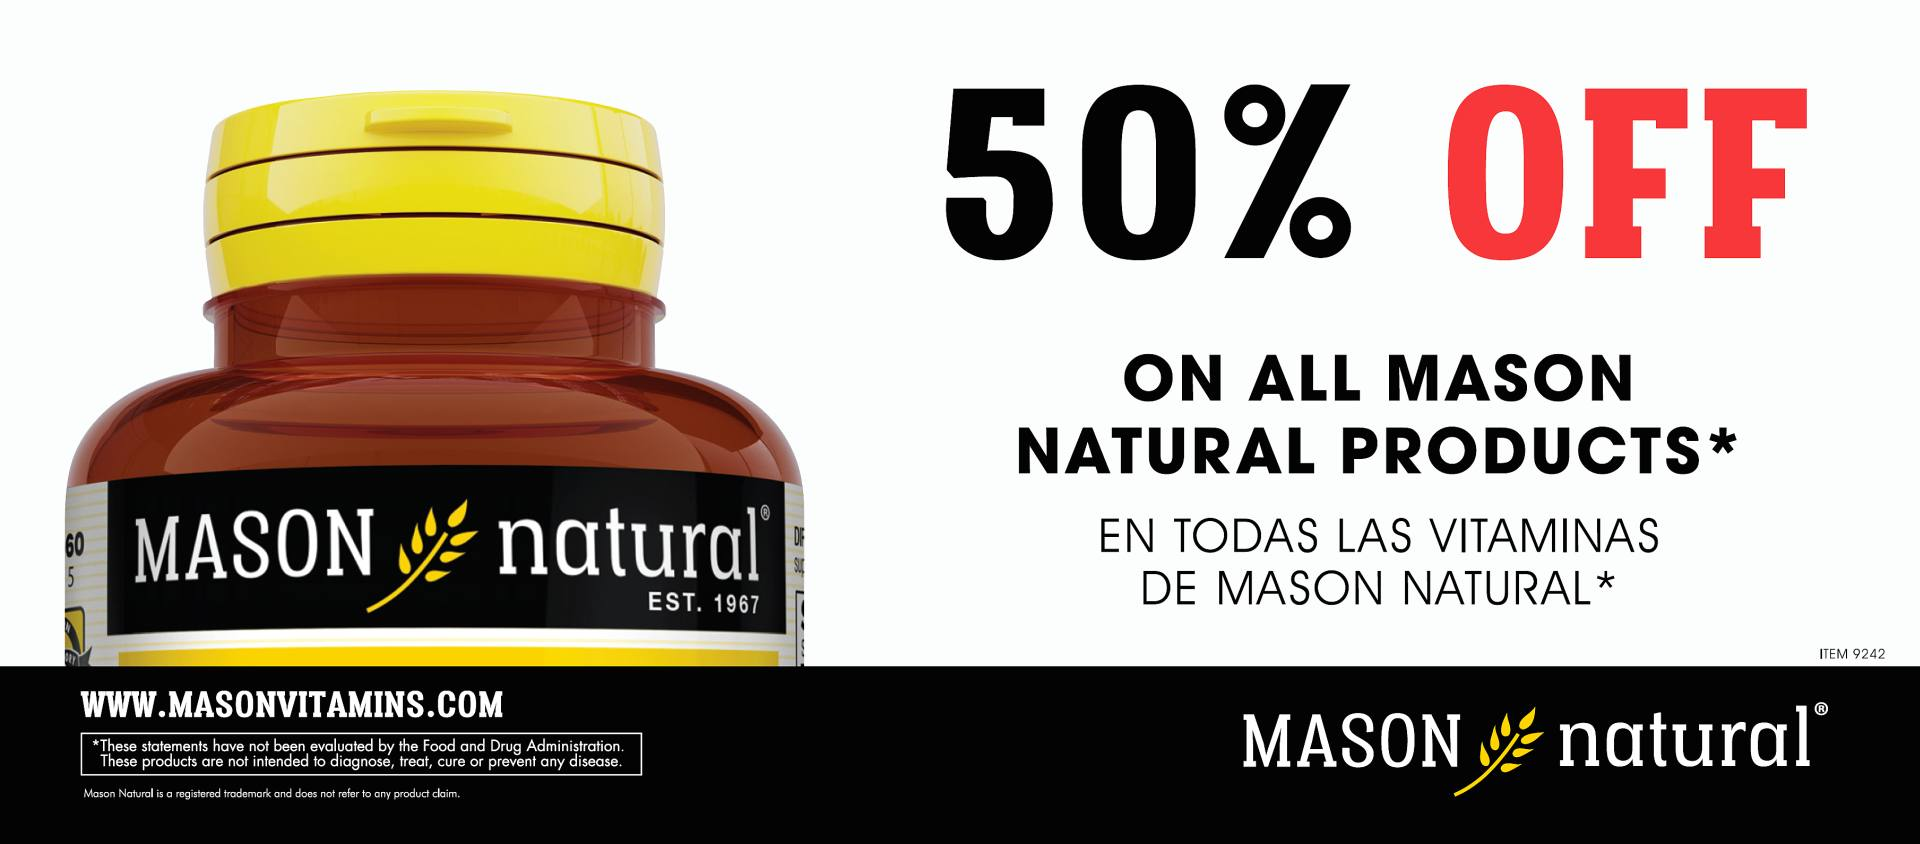 MasoN Special Savings On Mason Natural Vitamins